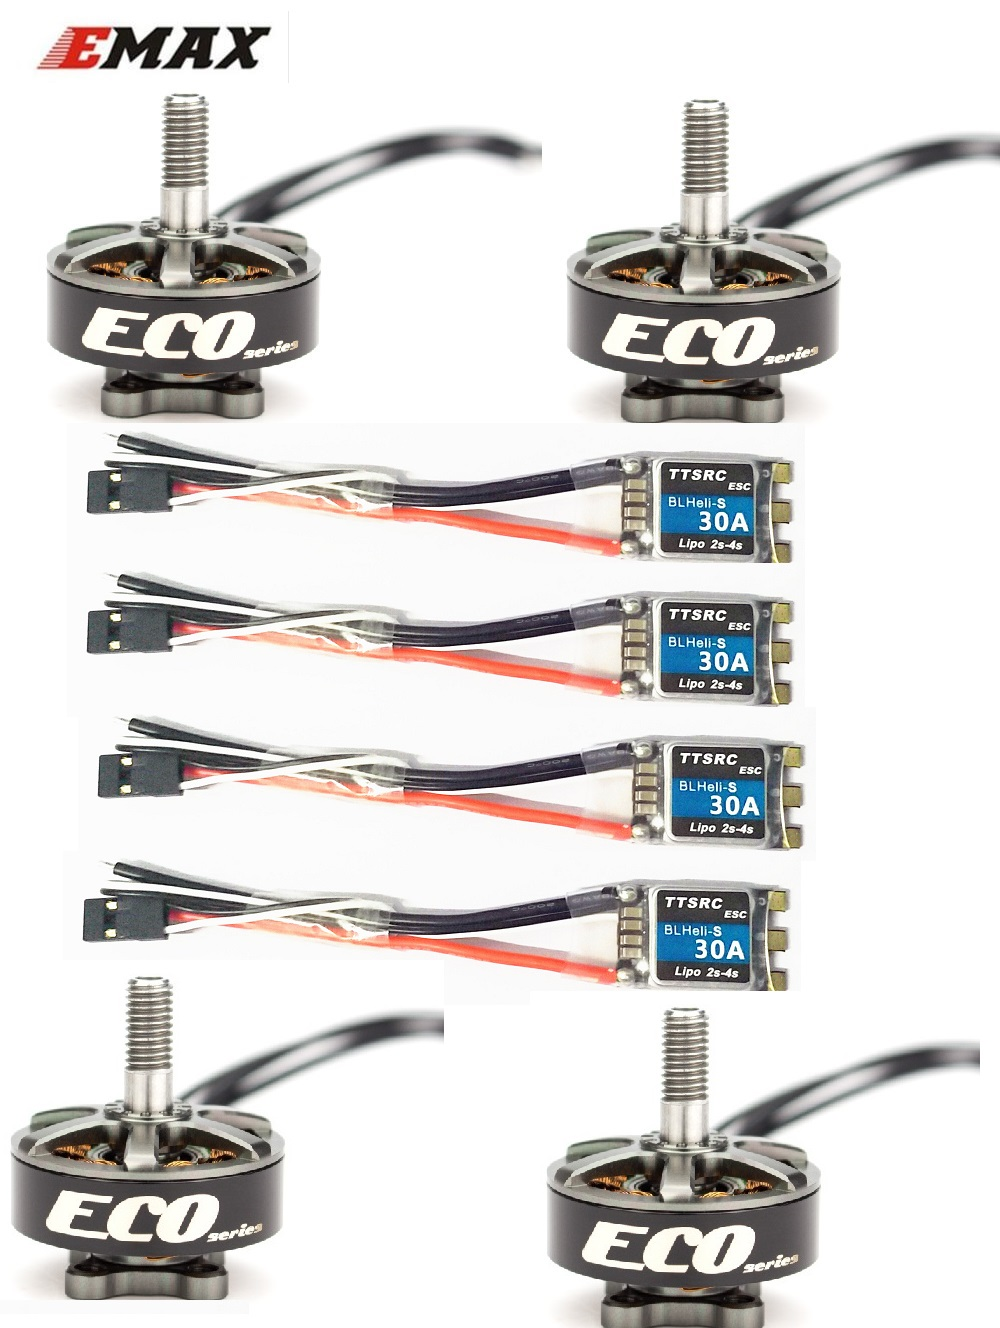 Emax ECO Series 2306 1700KV 3~<font><b>6s</b></font> /2400KV 2~4s Durable <font><b>Motor</b></font> for DIY Racing Drone RC Helicopter image